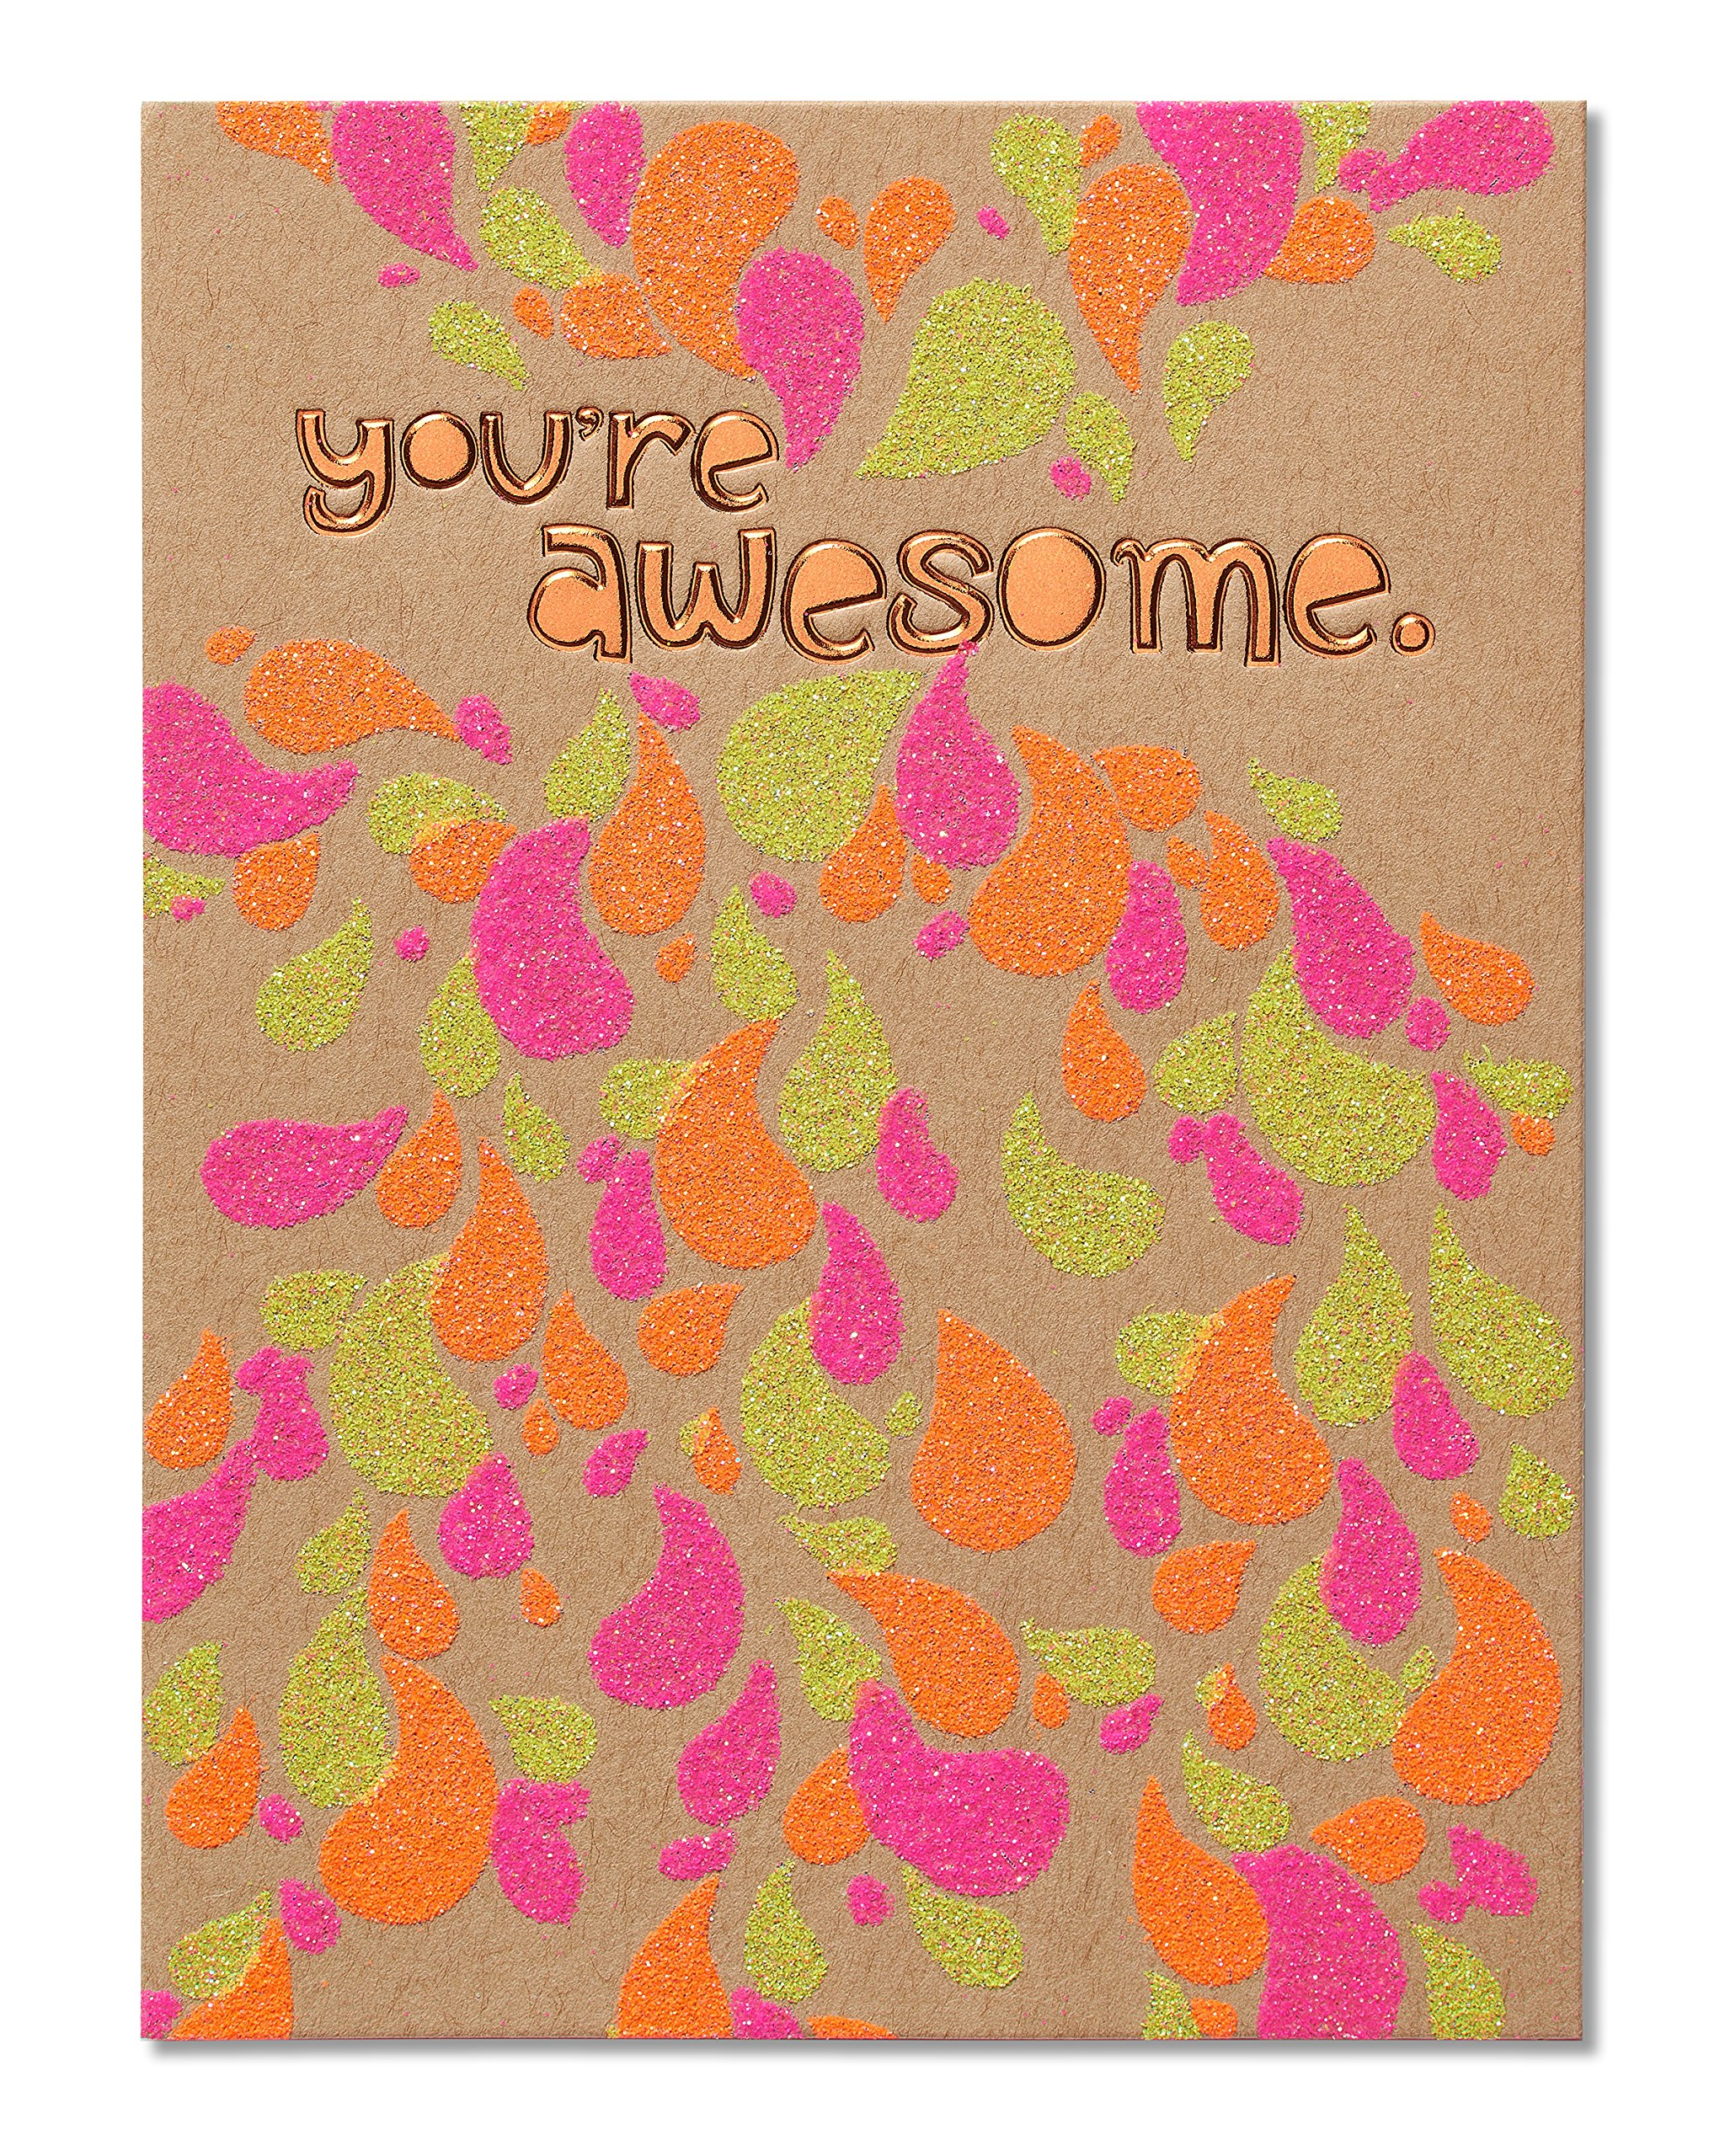 American Greetings You're Awesome Birthday Card with Glitter - 5856772